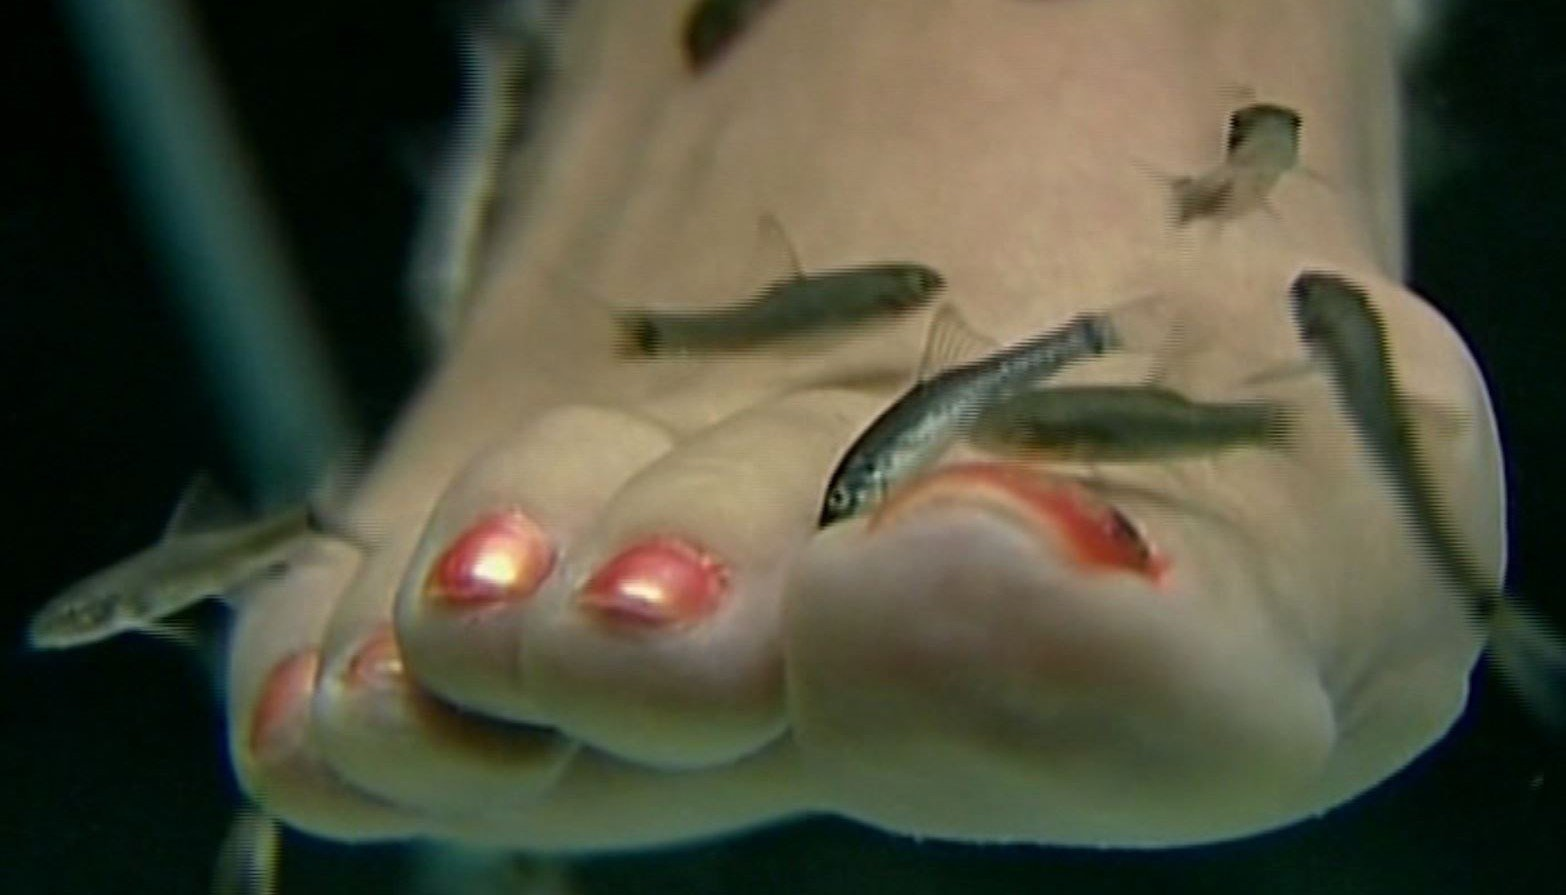 Woman's toenails fall off after fish pedicure, researchers say